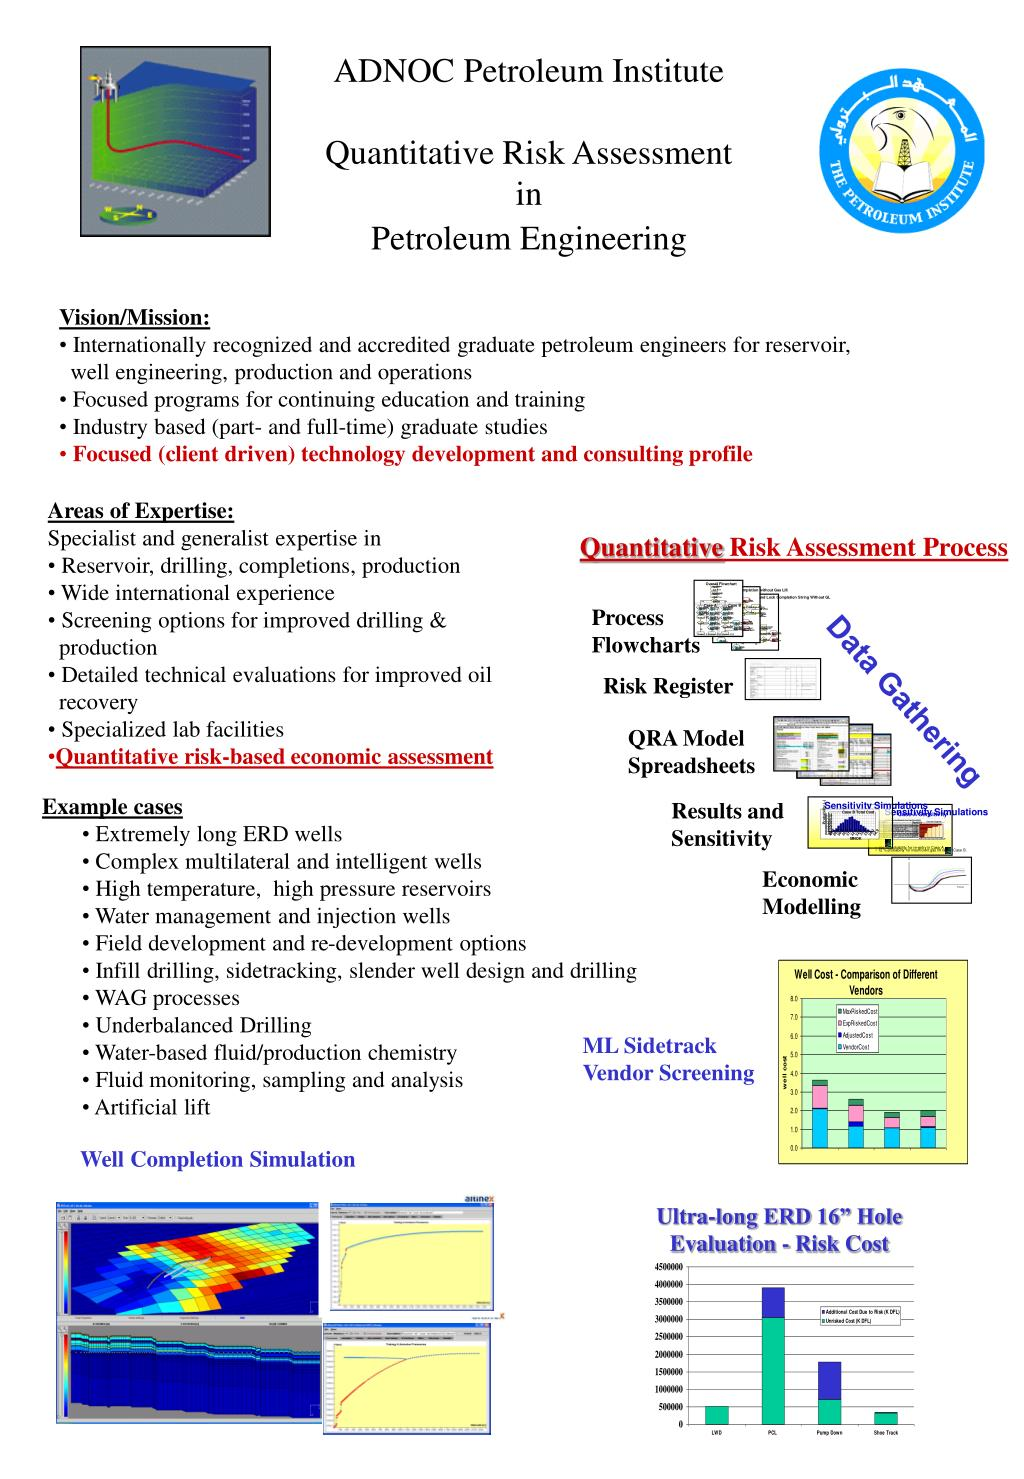 Ppt Adnoc Petroleum Institute Quantitative Risk Assessment In Petroleum Engineering Powerpoint Presentation Id 3114394